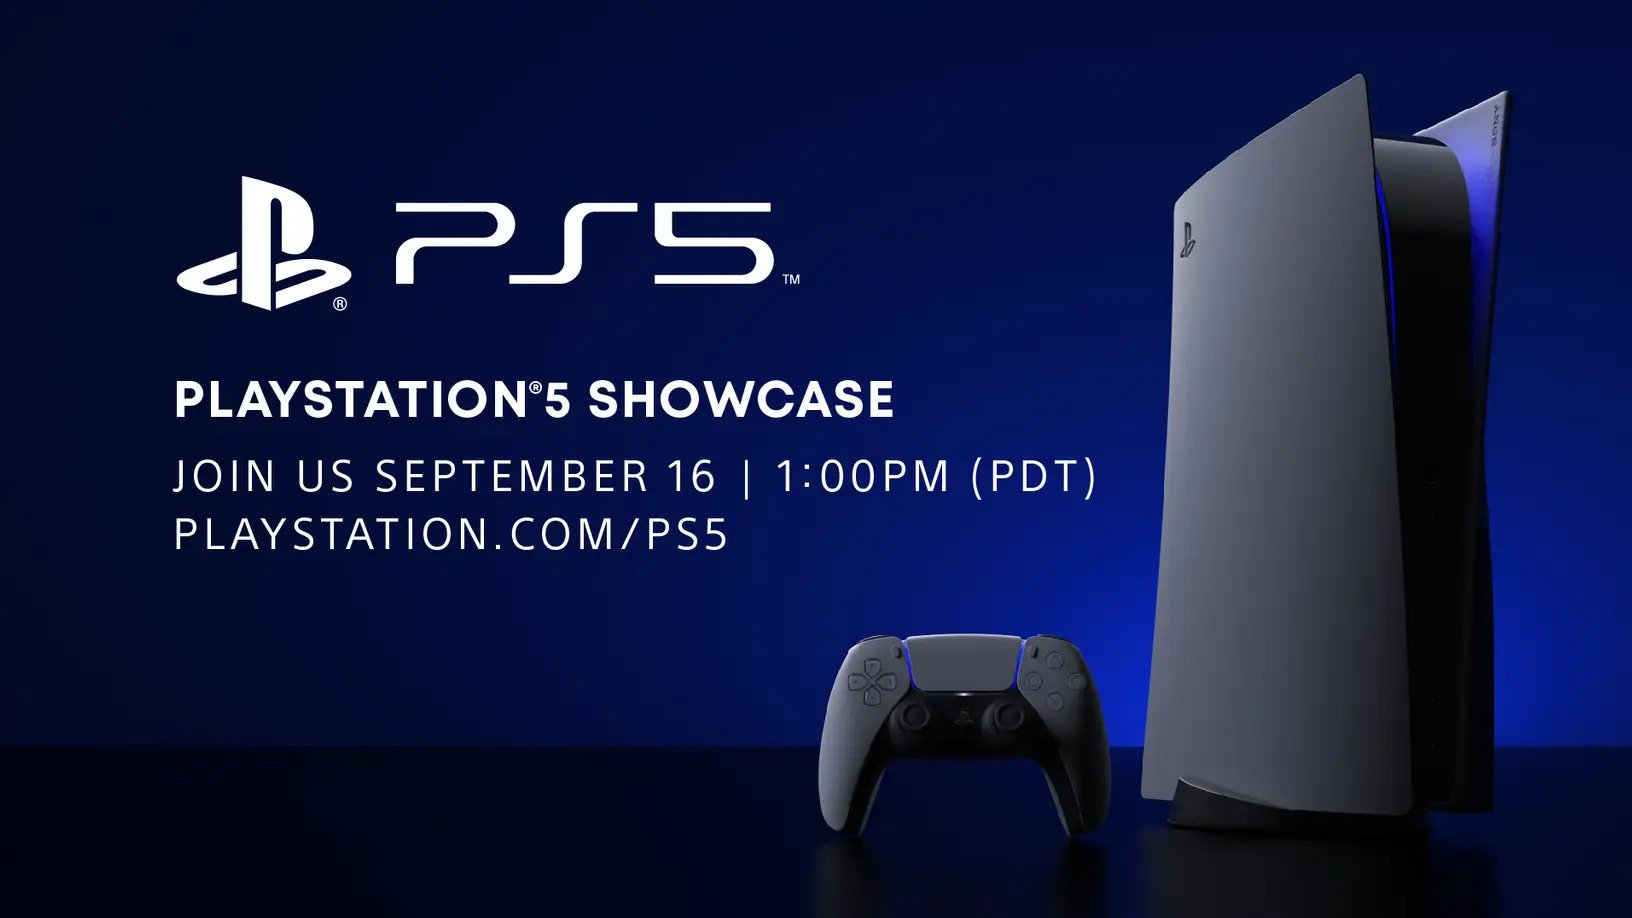 Ps5 showcase graphic